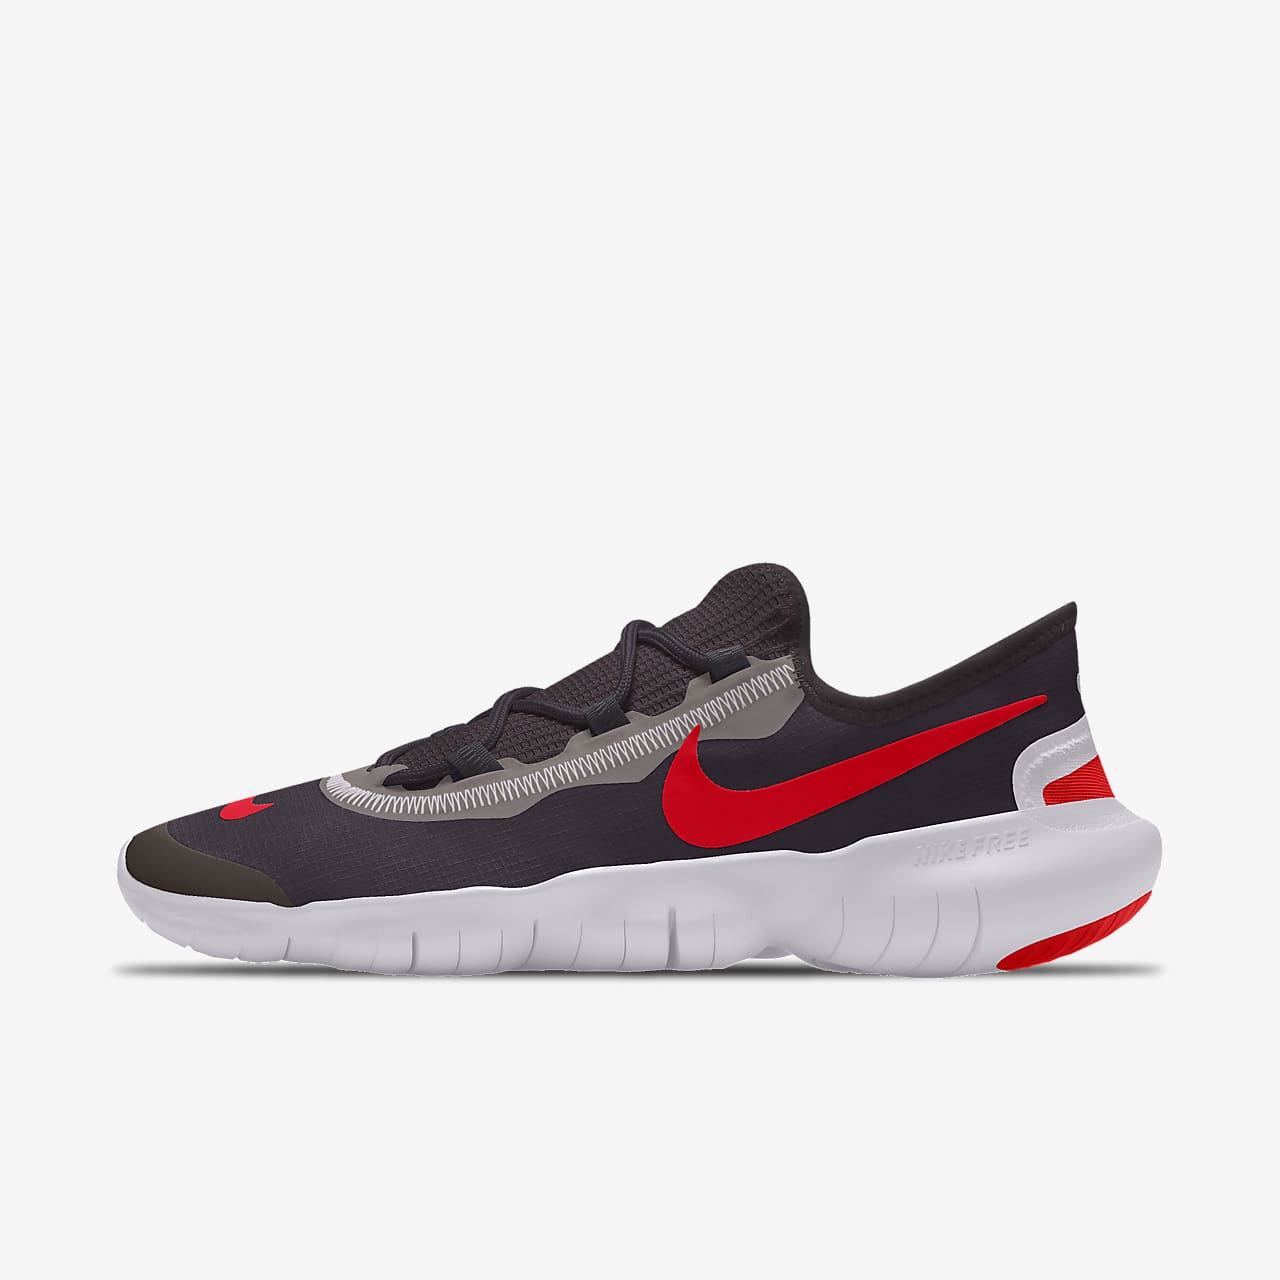 Nike Free RN 5.0 By You Zapatillas de running personalizables - Hombre